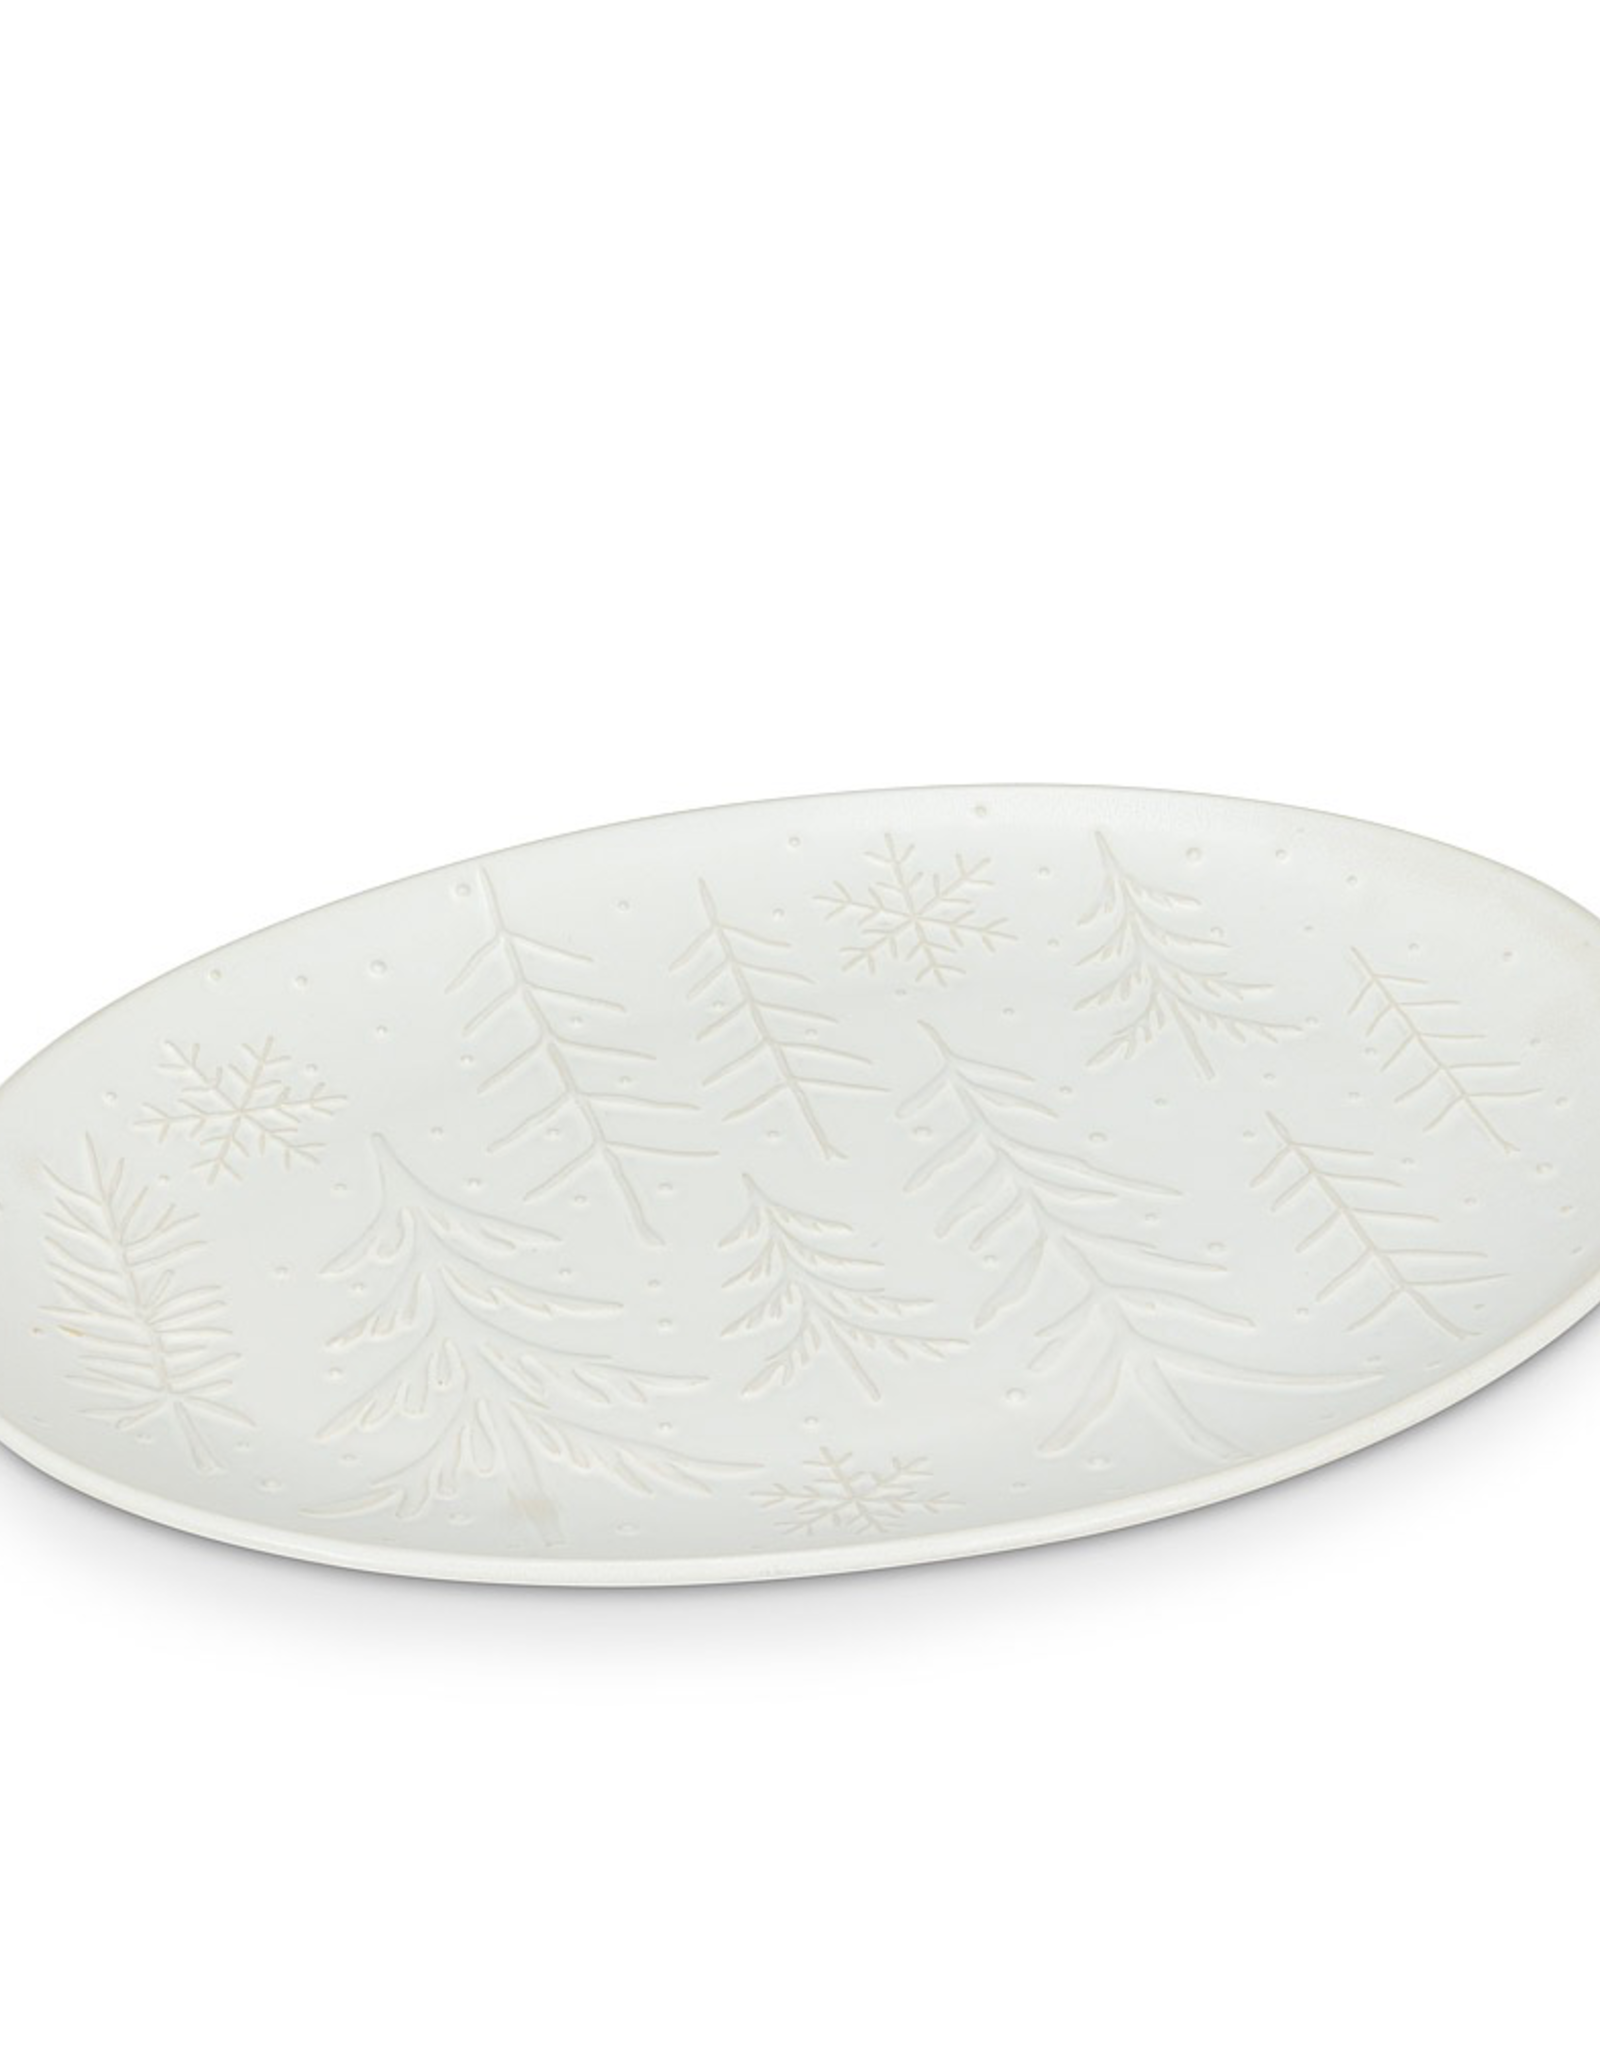 Xmas, Oval Patter, White w Trees and Snowflakes